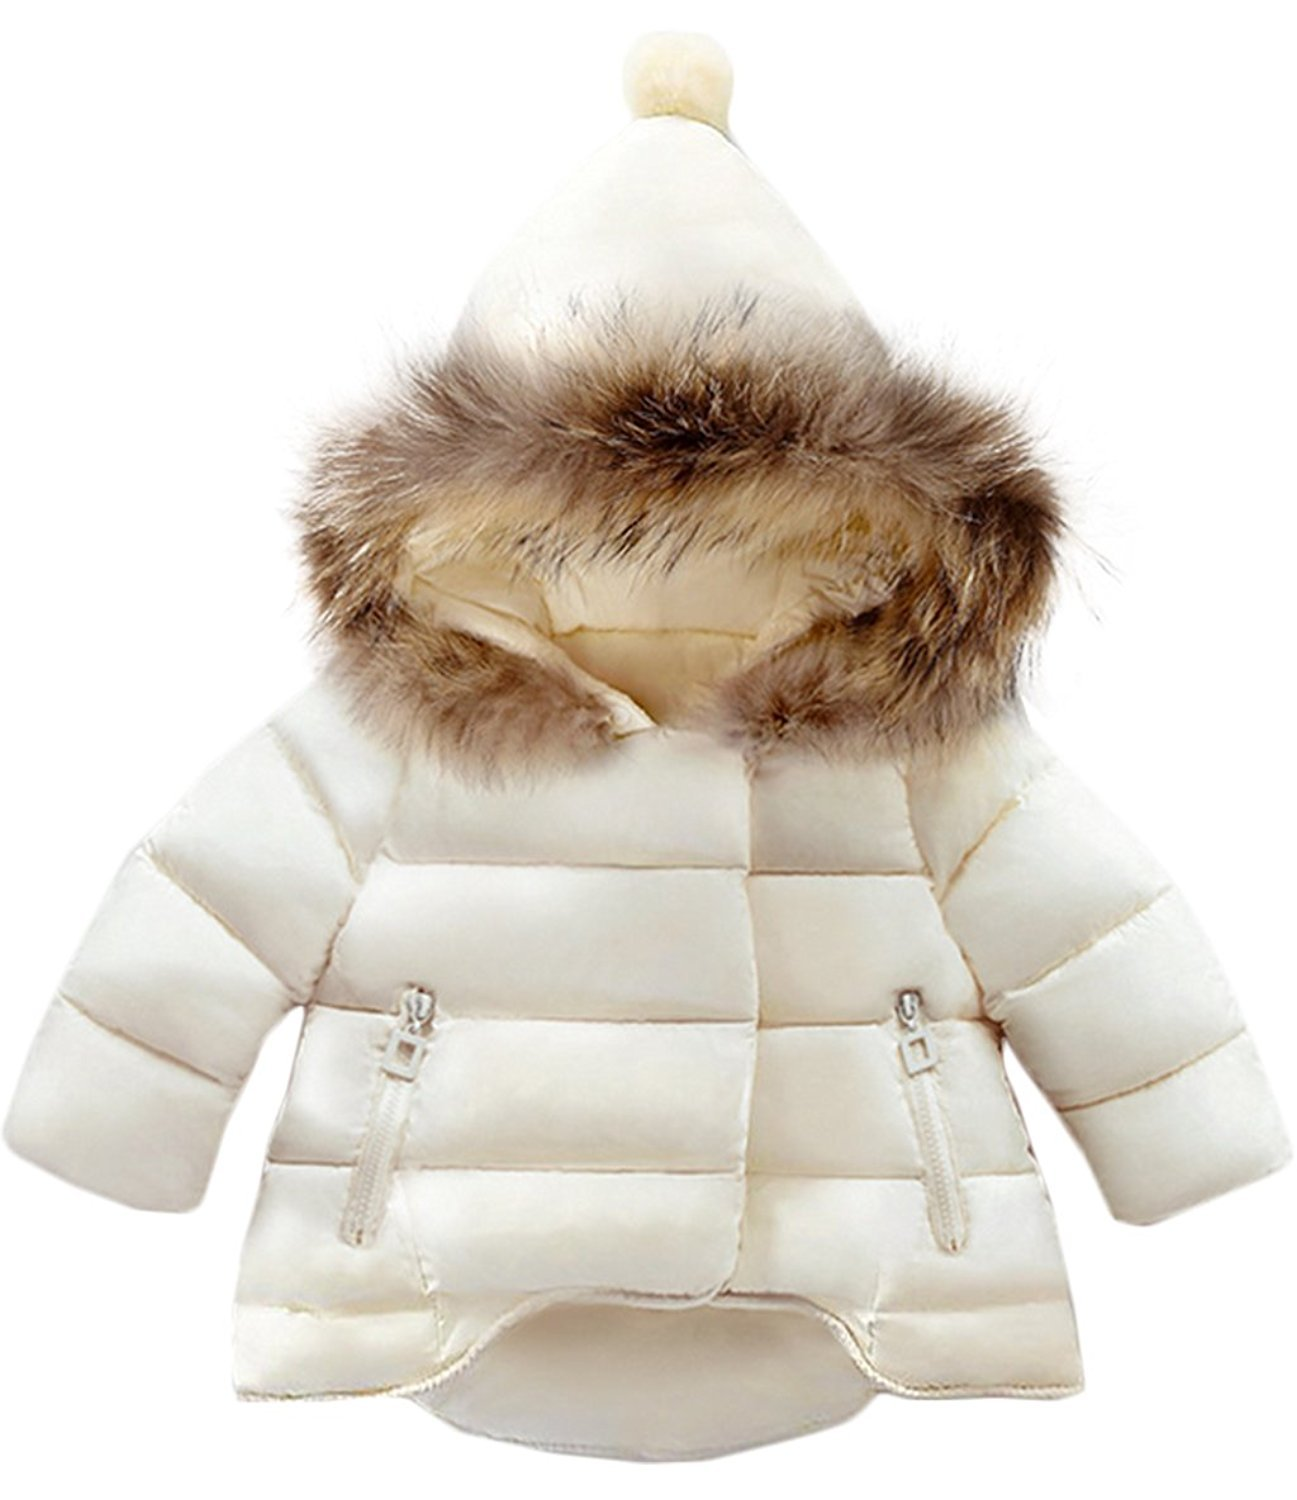 Jojobaby Baby Boys Girls Hooded Snowsuit Winter Warm Fur Collar Hooded Down Windproof Jacket Outerwear (12-18 Months, Beige) by Jojobaby